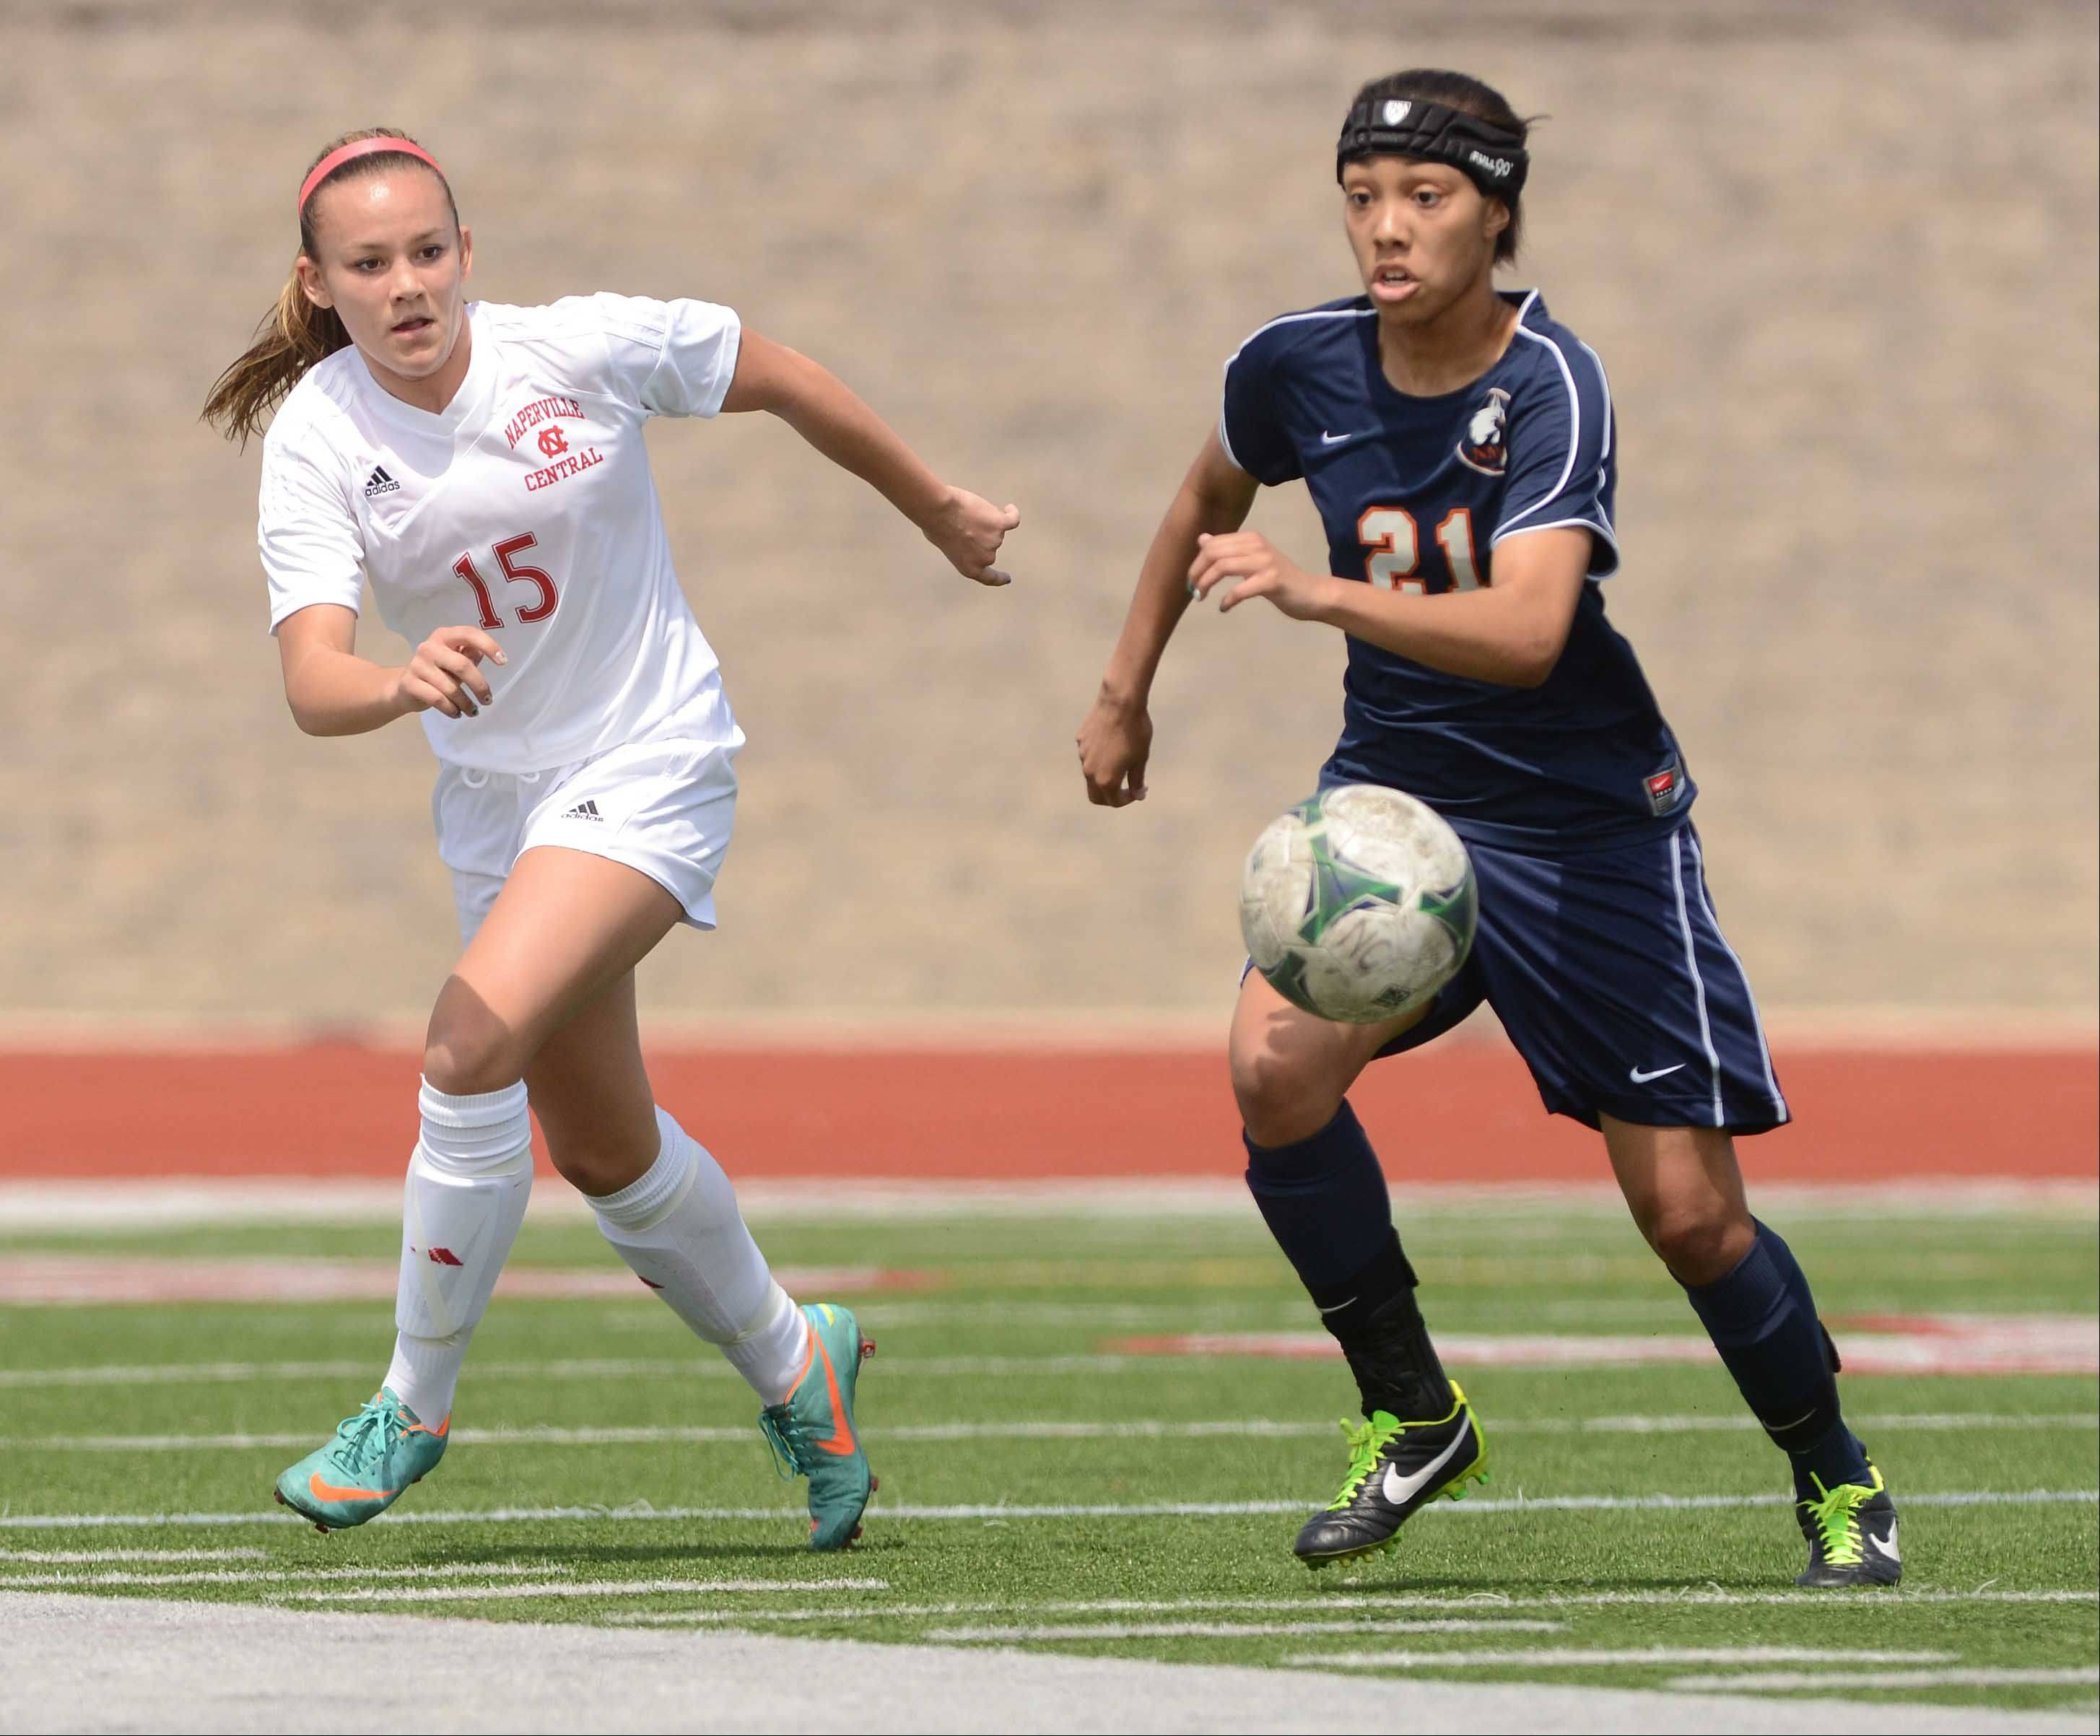 Kayla Rowan of Naperville Central,left, and Zoe Swift of Naperville North chae a ball during the Naperville Invitational championship game Saturday.